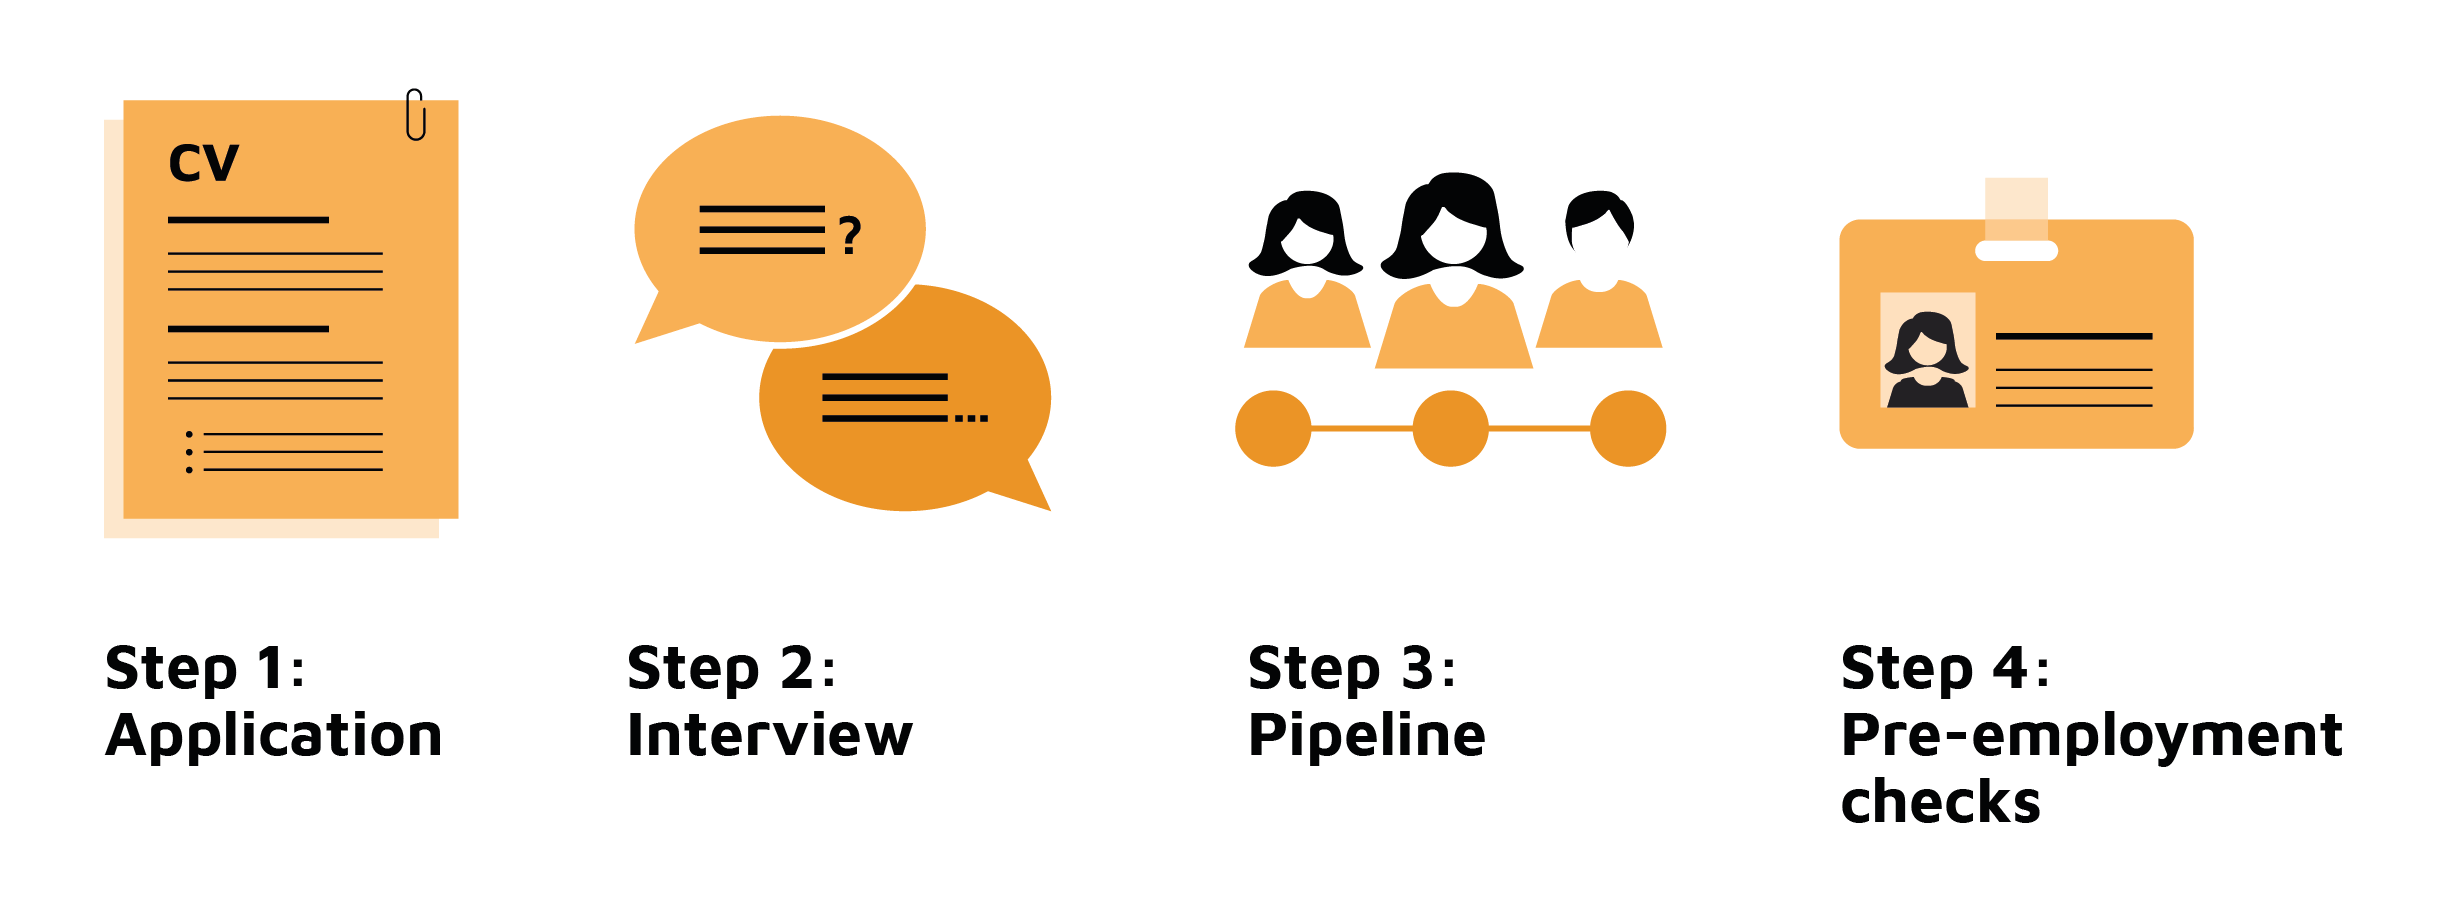 Infographic: Step 1: Application | Step 2: Interview | Step 3: Pipeline | Step 4: Pre-employment checks